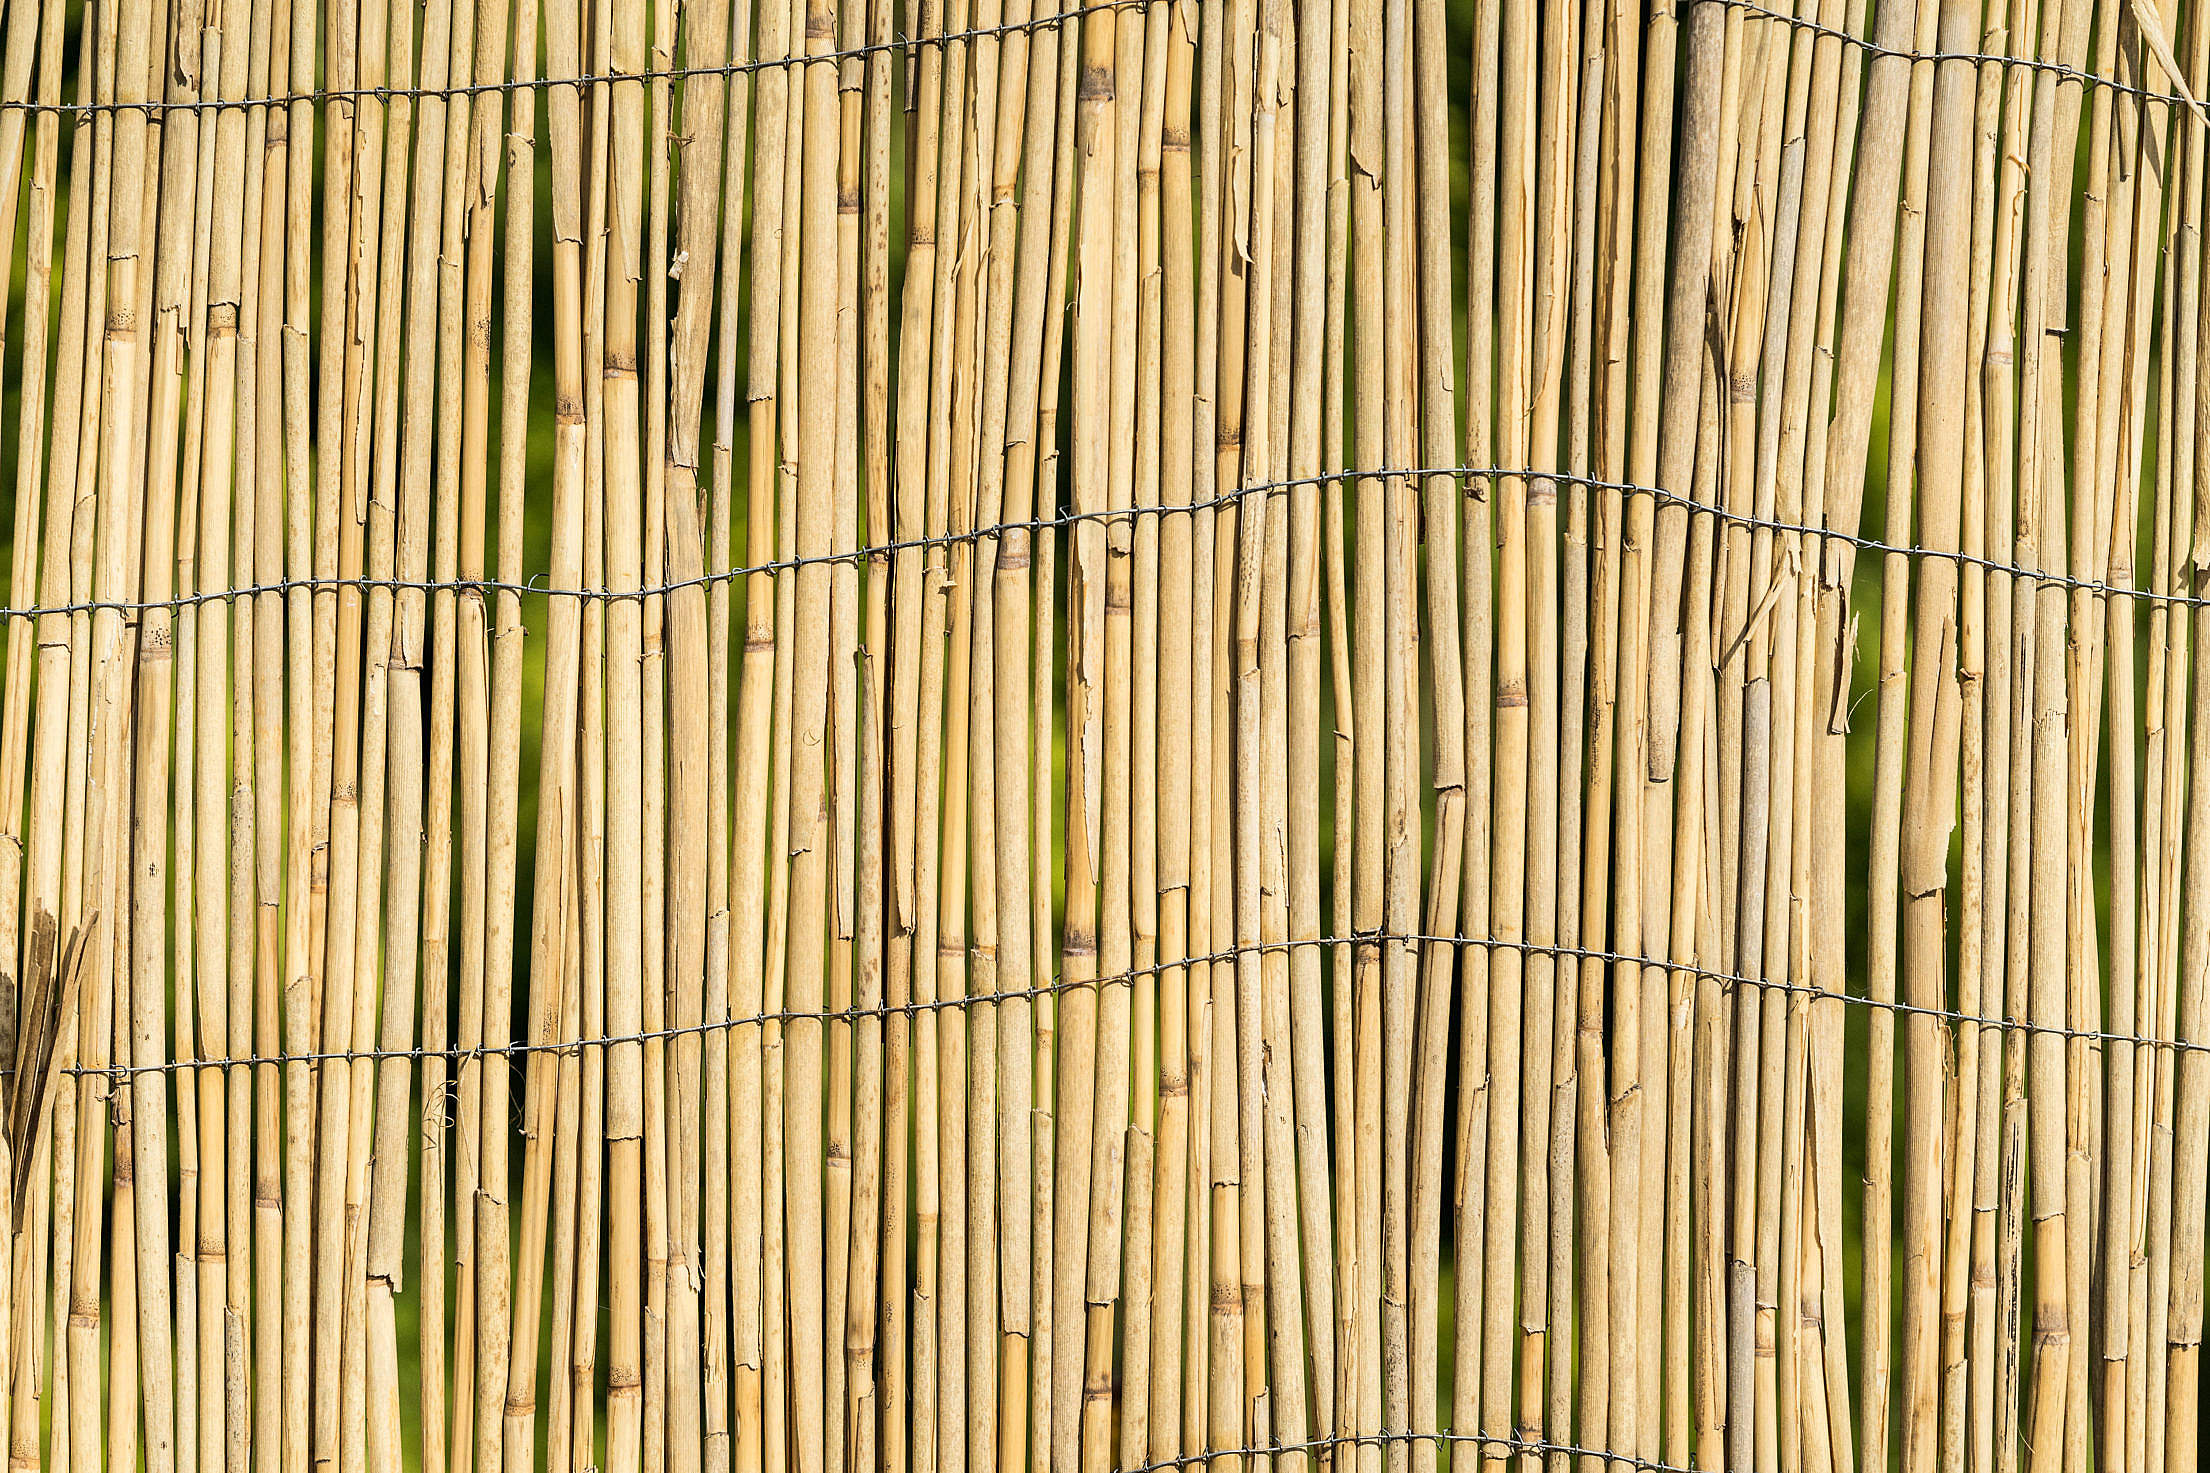 Garden Bamboo Wall Fence Texture Background Free Stock Photo